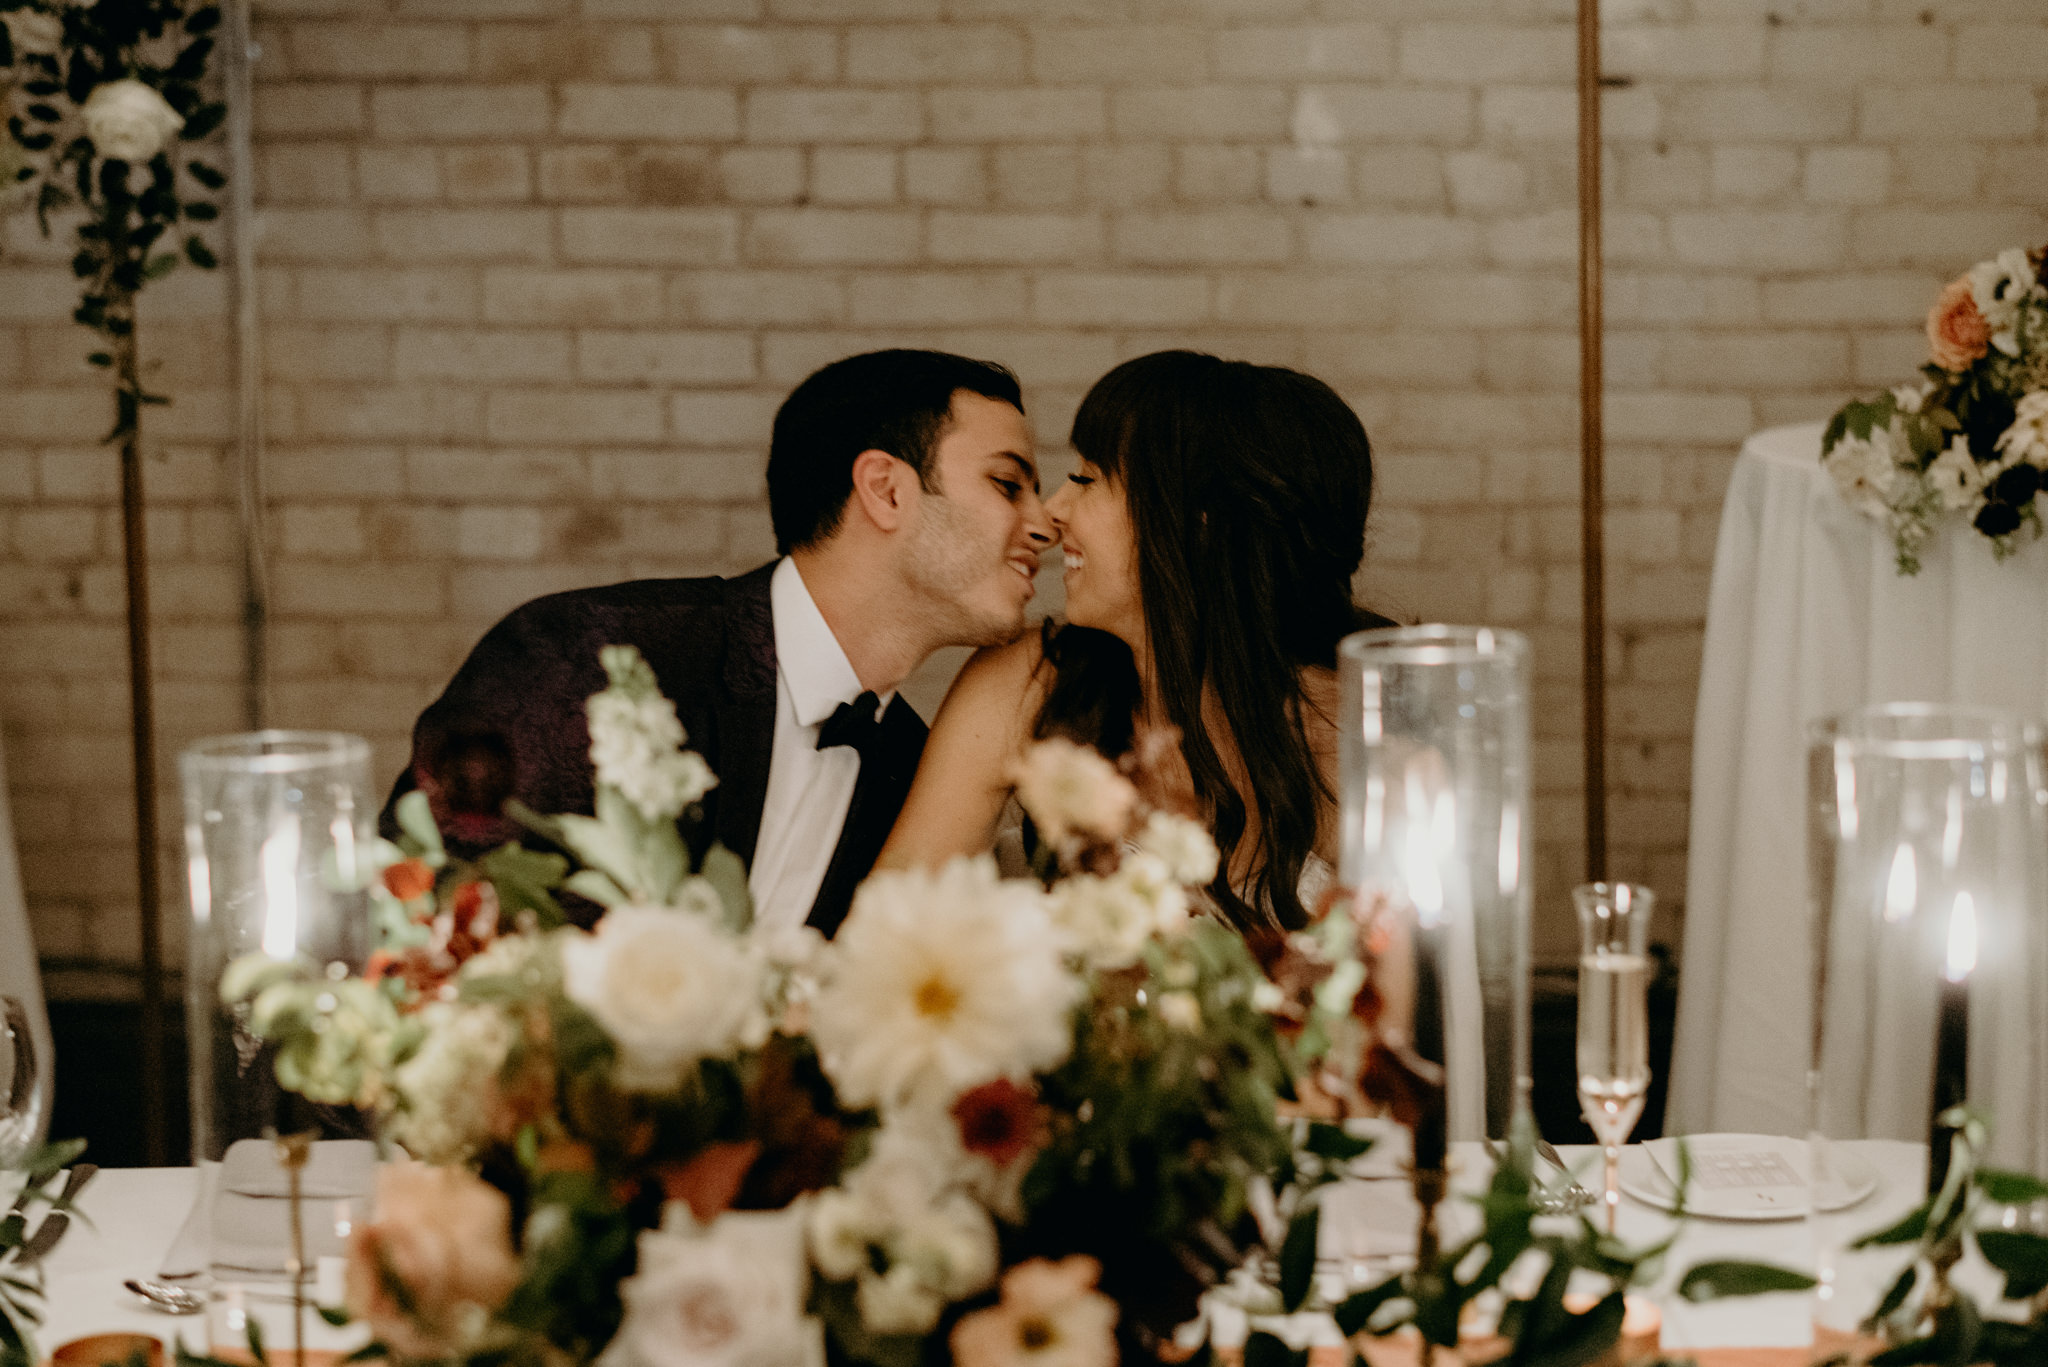 Bride and groom kissing at sweetheart table during reception